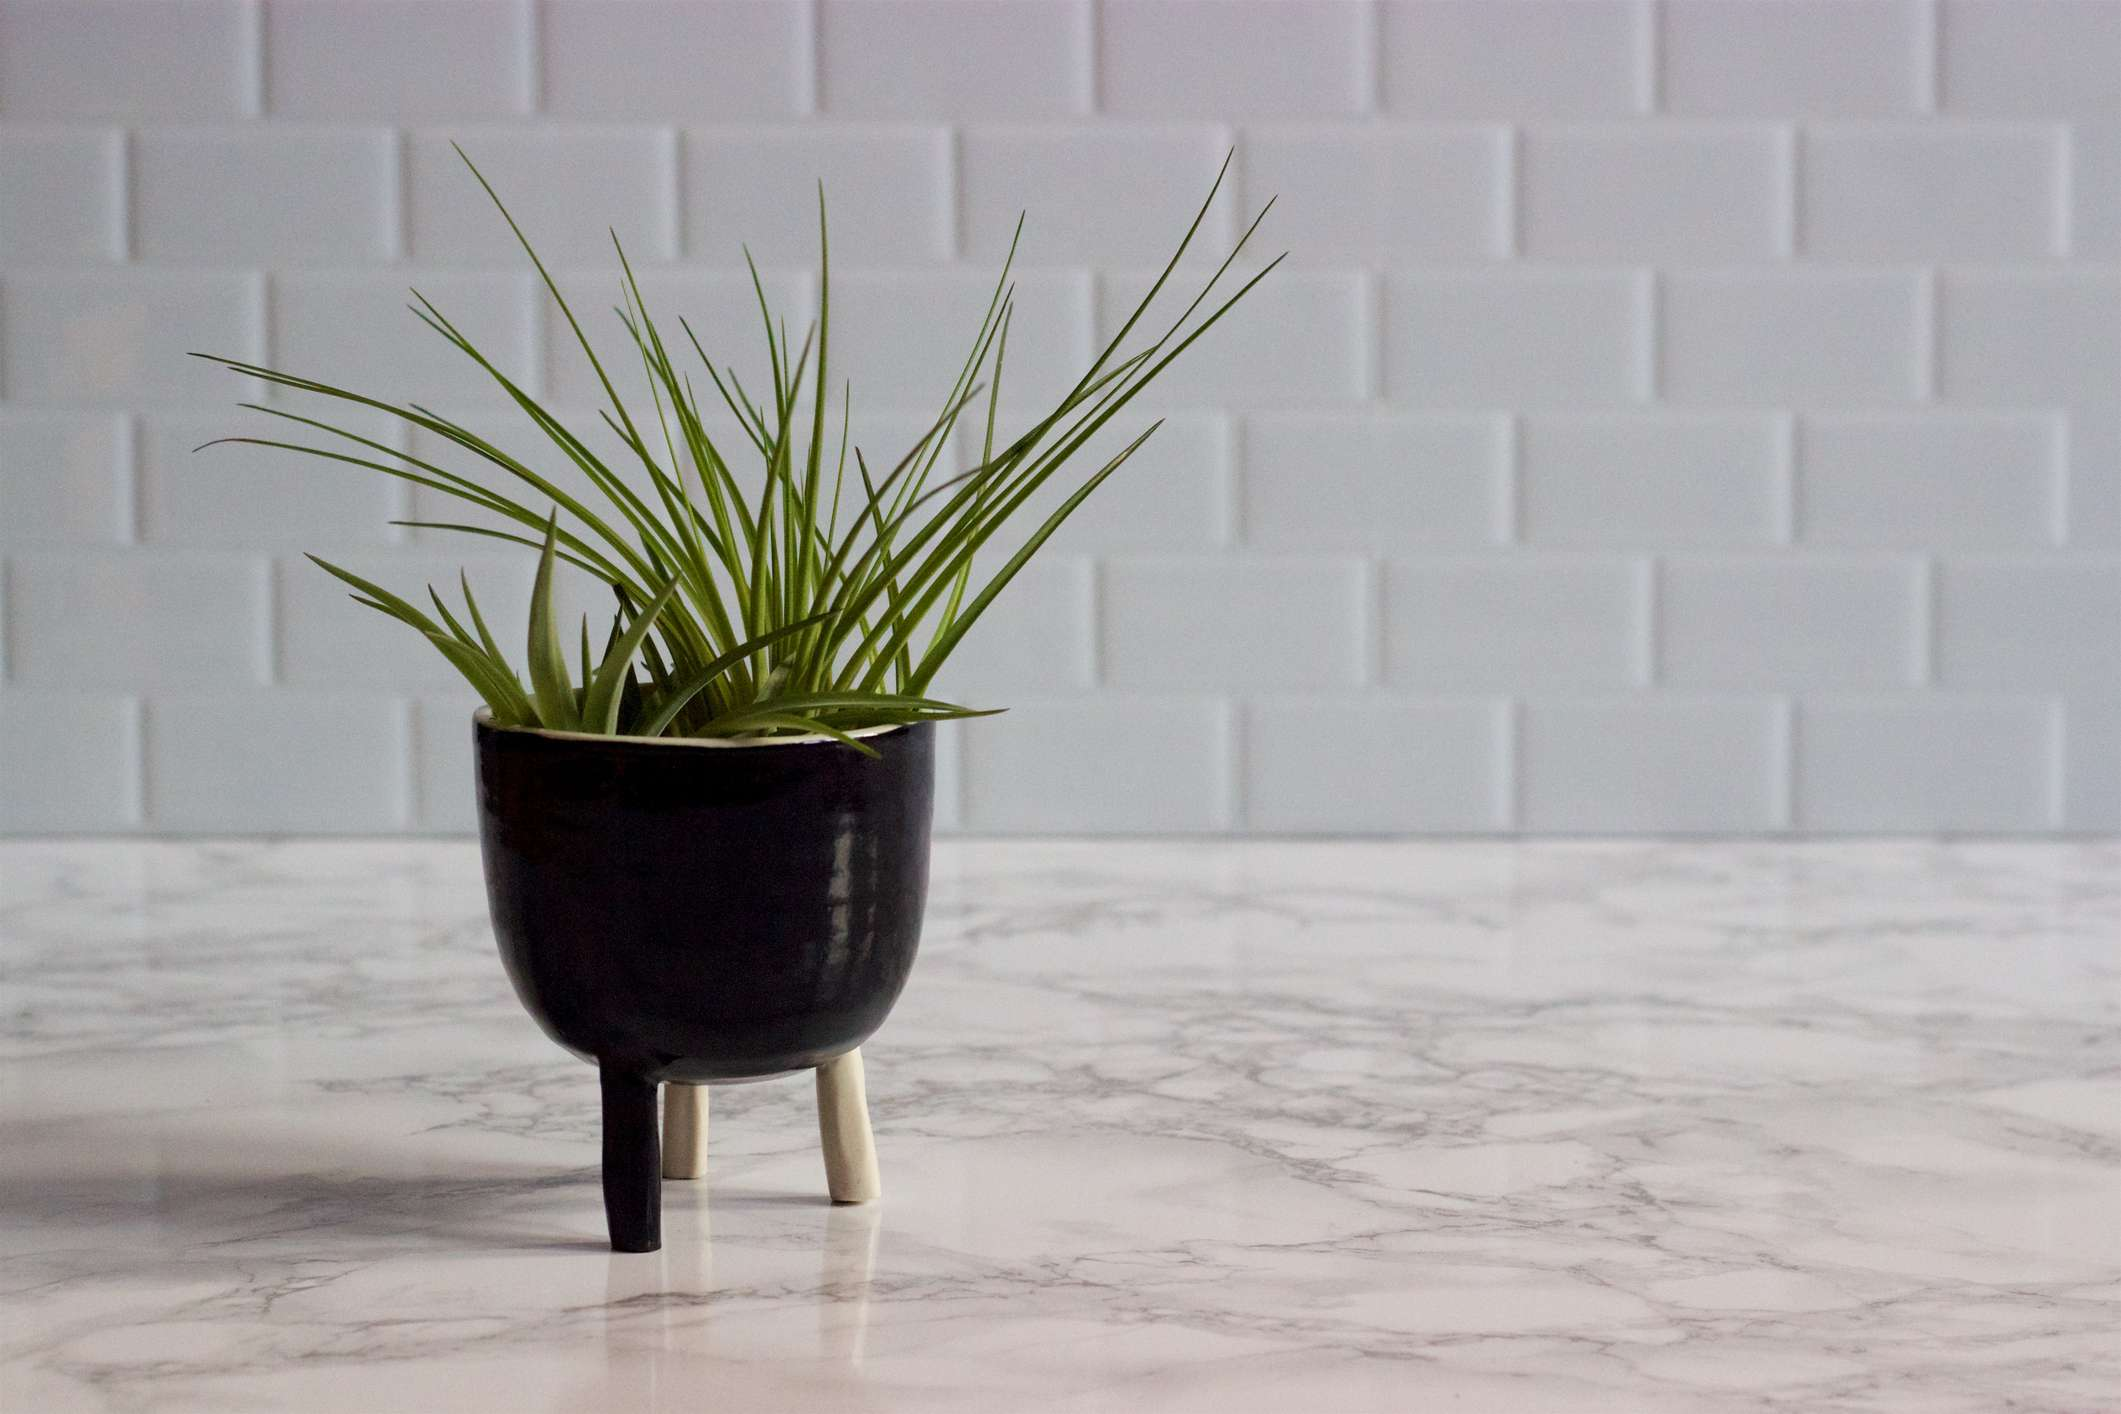 An air plant on a kitchen countertop